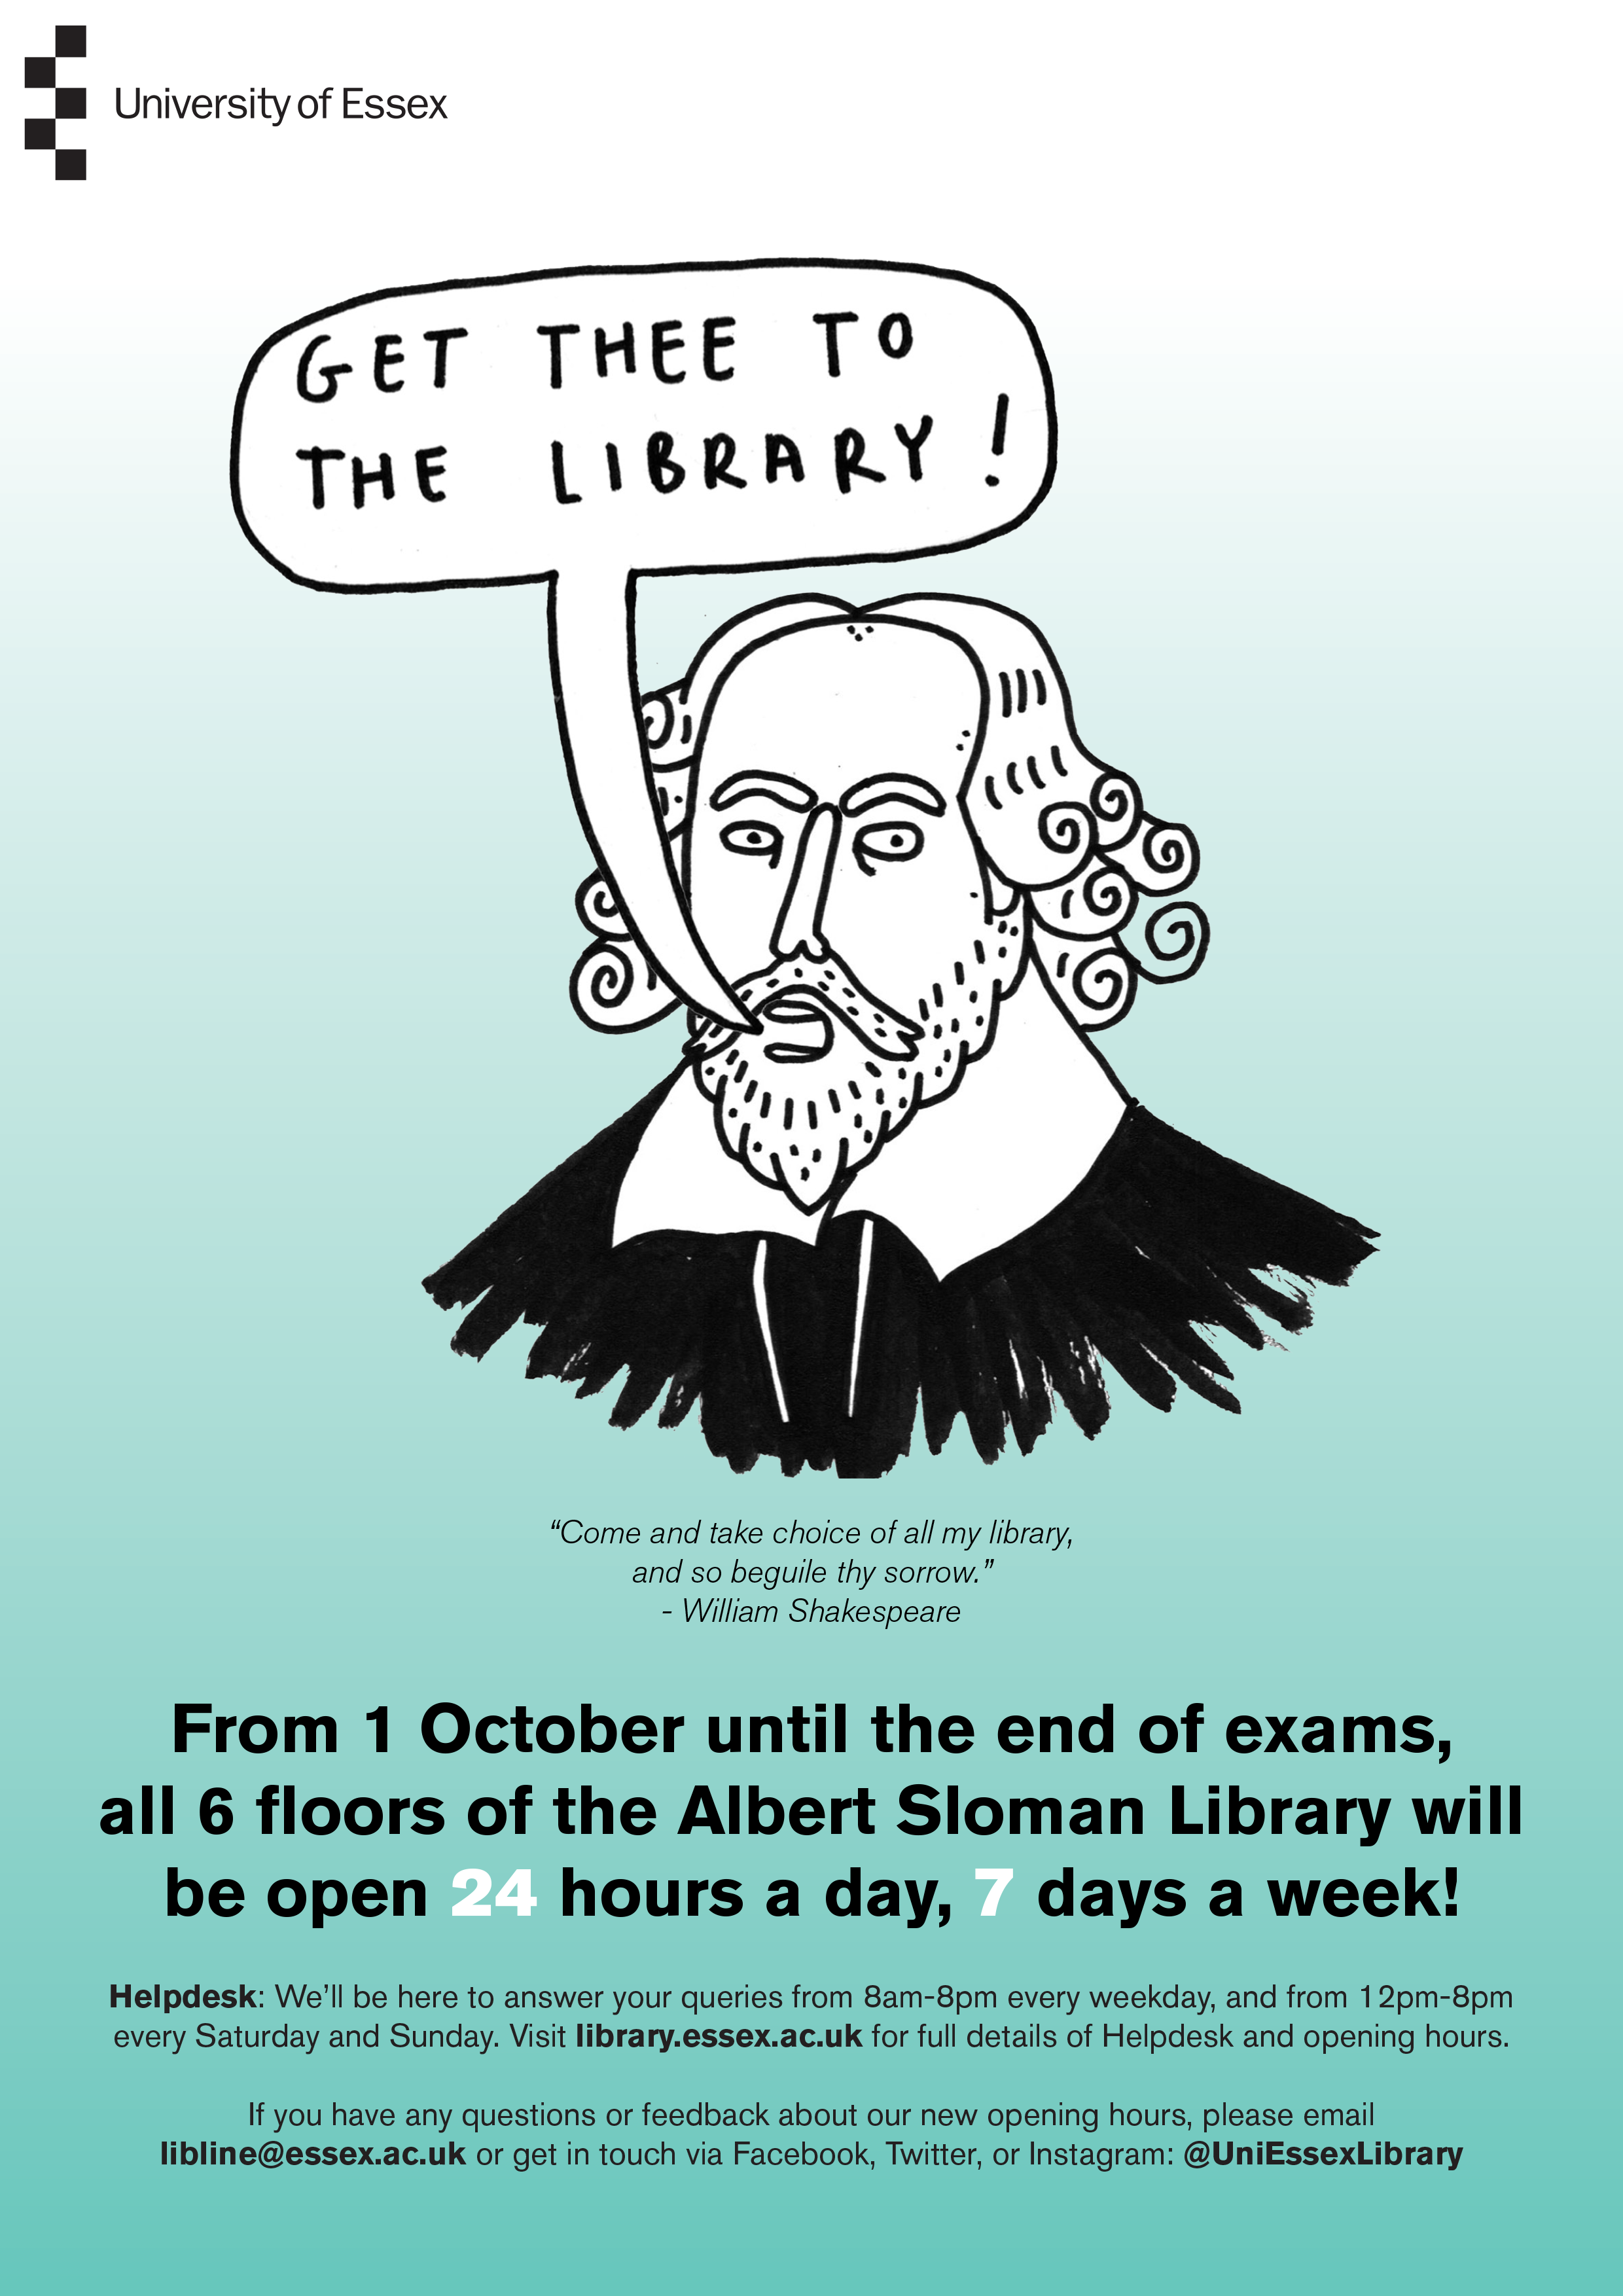 Library poster with cartoon of Shakespeare on it